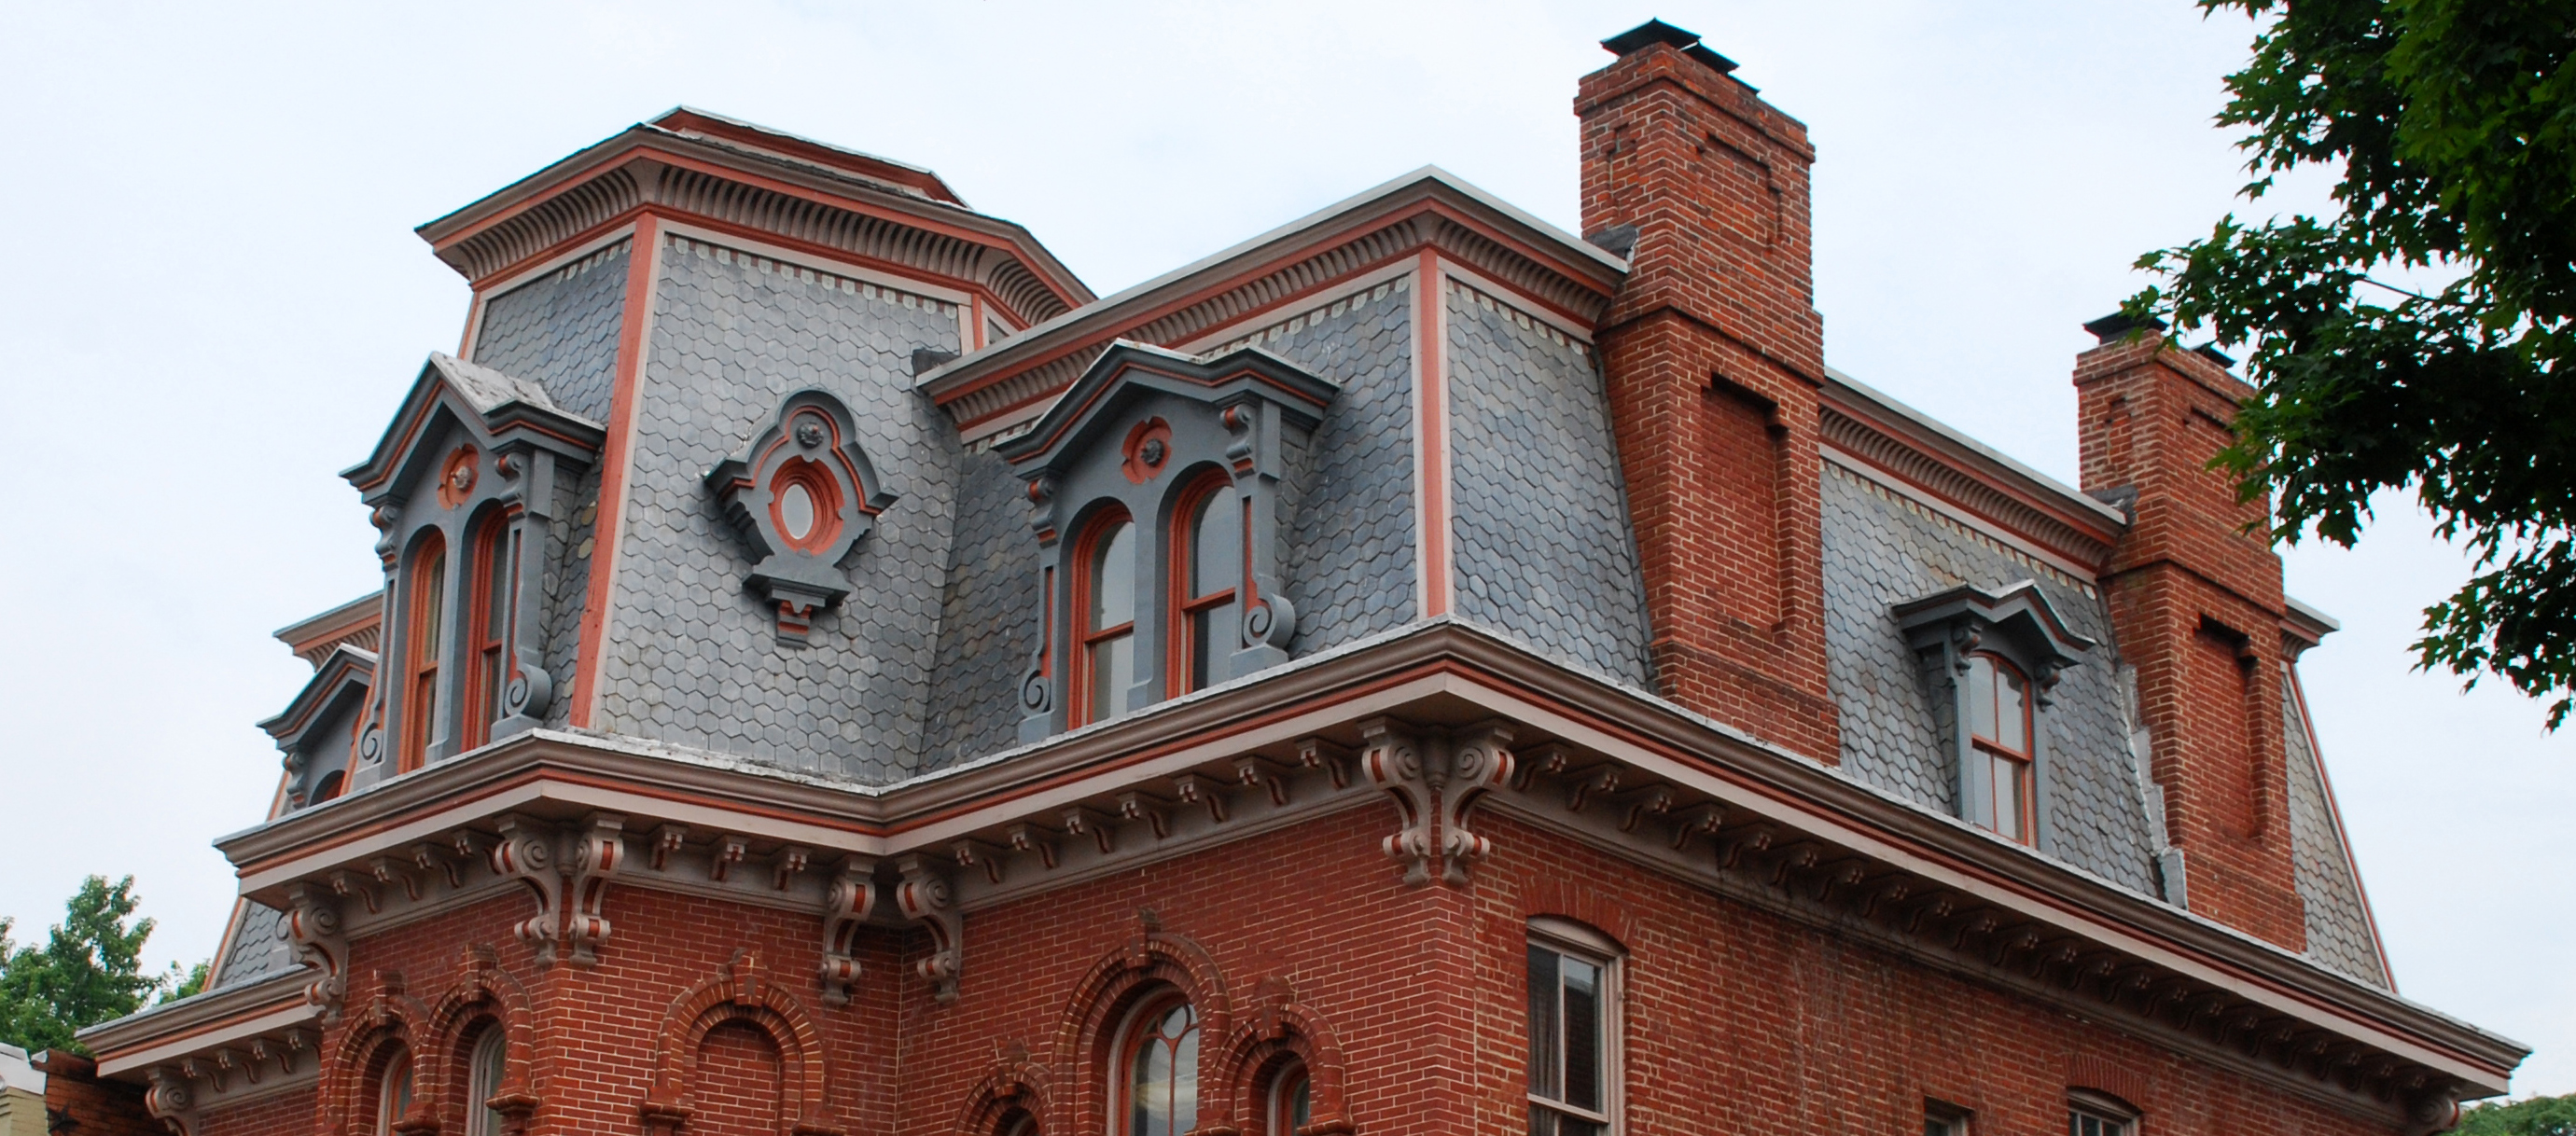 Field guide to georgetown houses the early victorian for What is a mansard roof